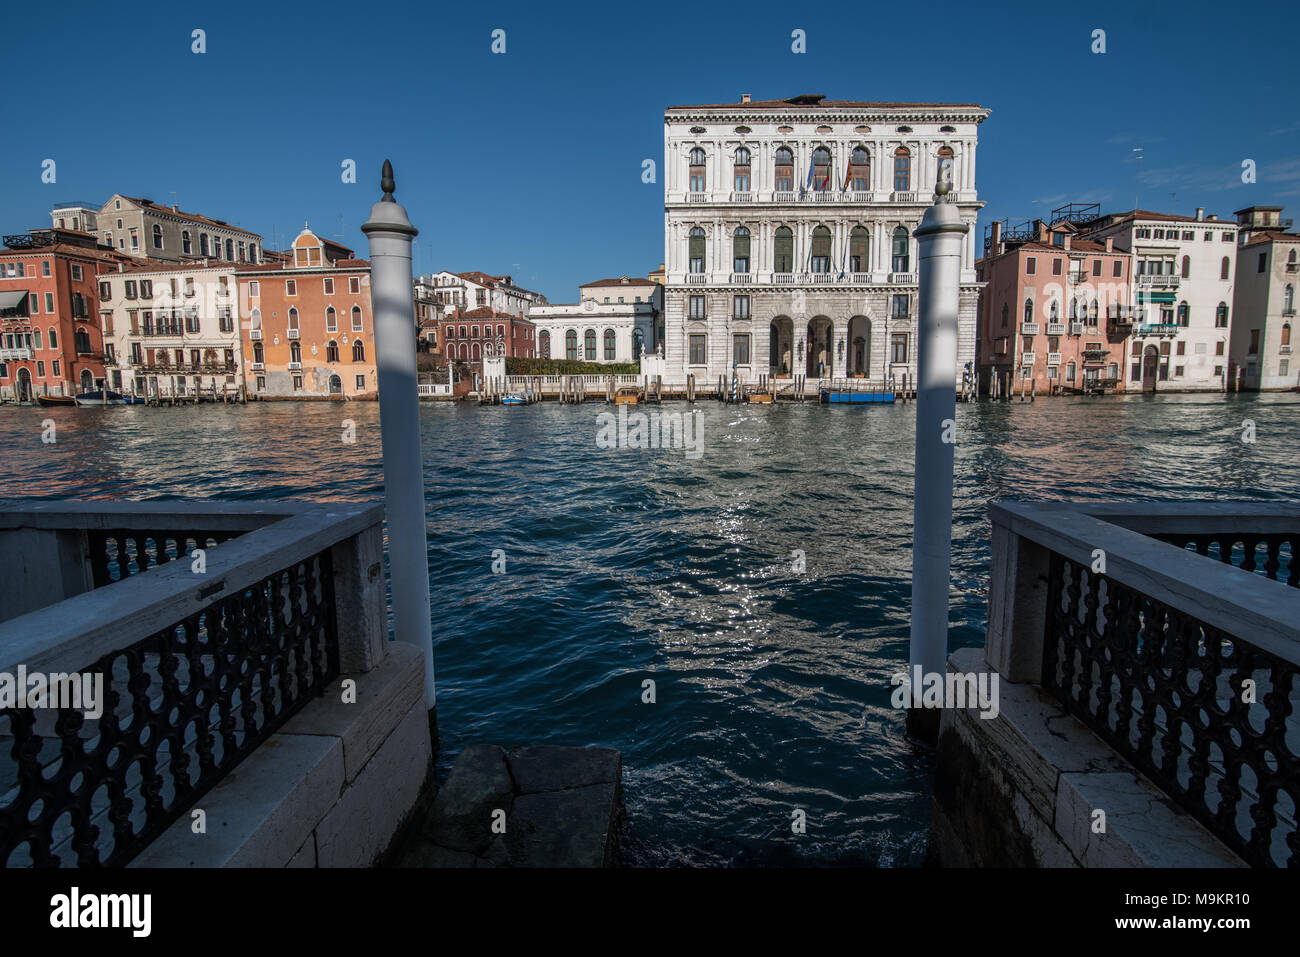 ITaly, Venice - Ordinary day in Venice, Italy with canals and gondolas around the city - Stock Image